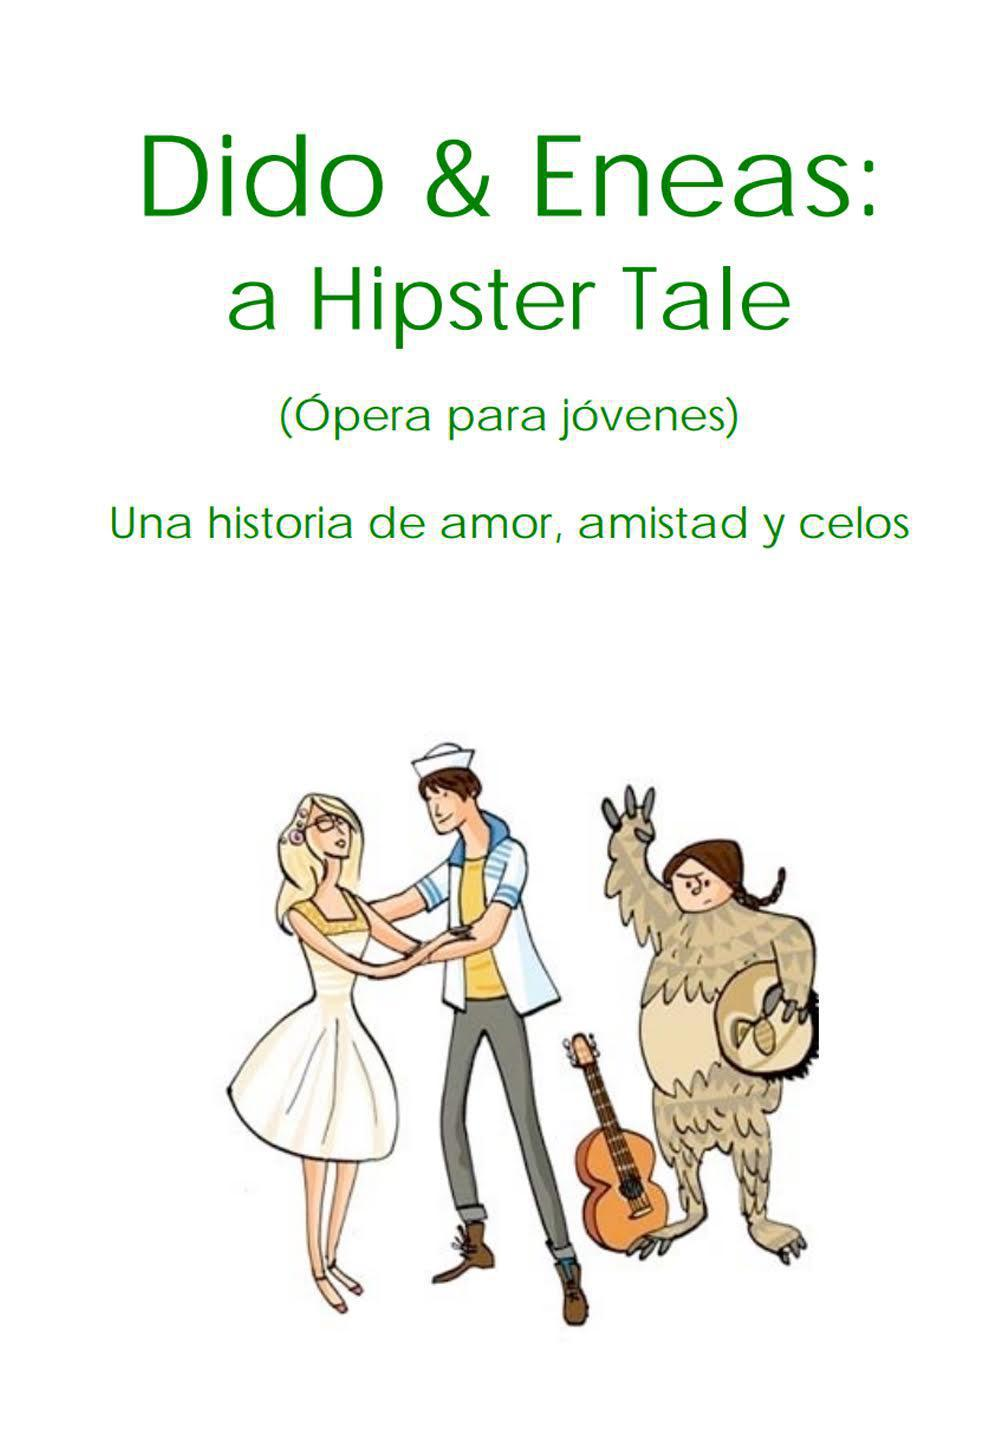 DIDO Y ENEAS A HIPSTER TALE